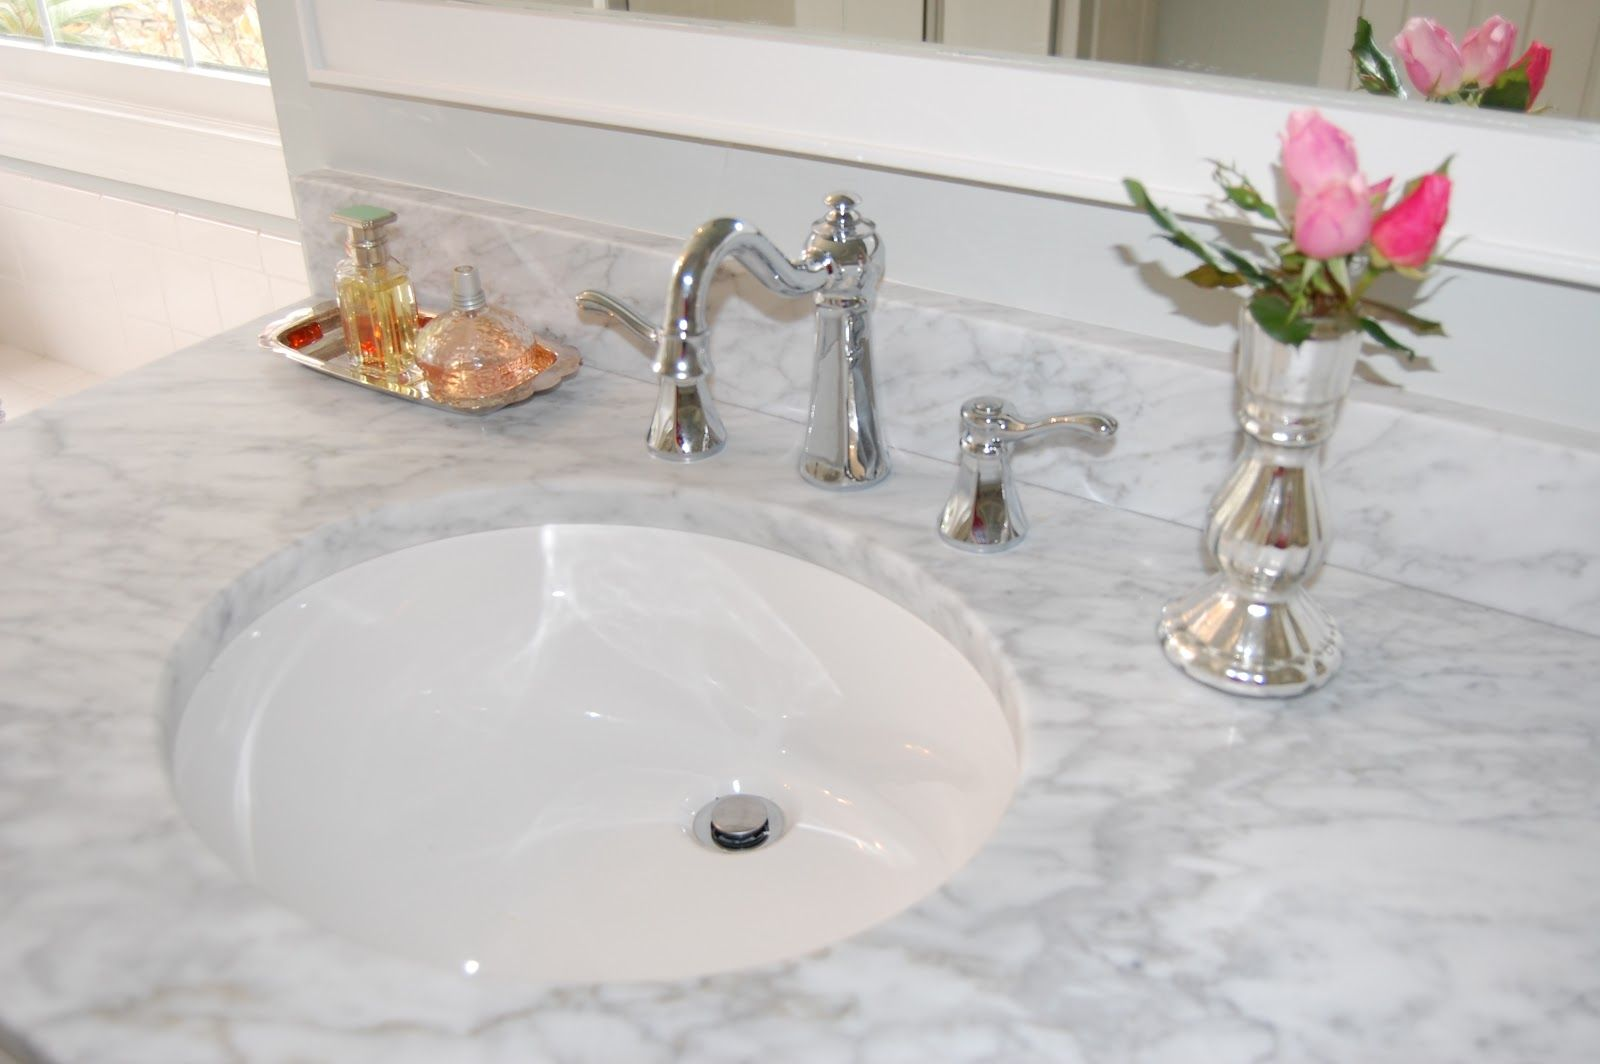 White Cultured Marble Carrera Bathroom Vanity Tops Include Round Undermount Sink And Chrome